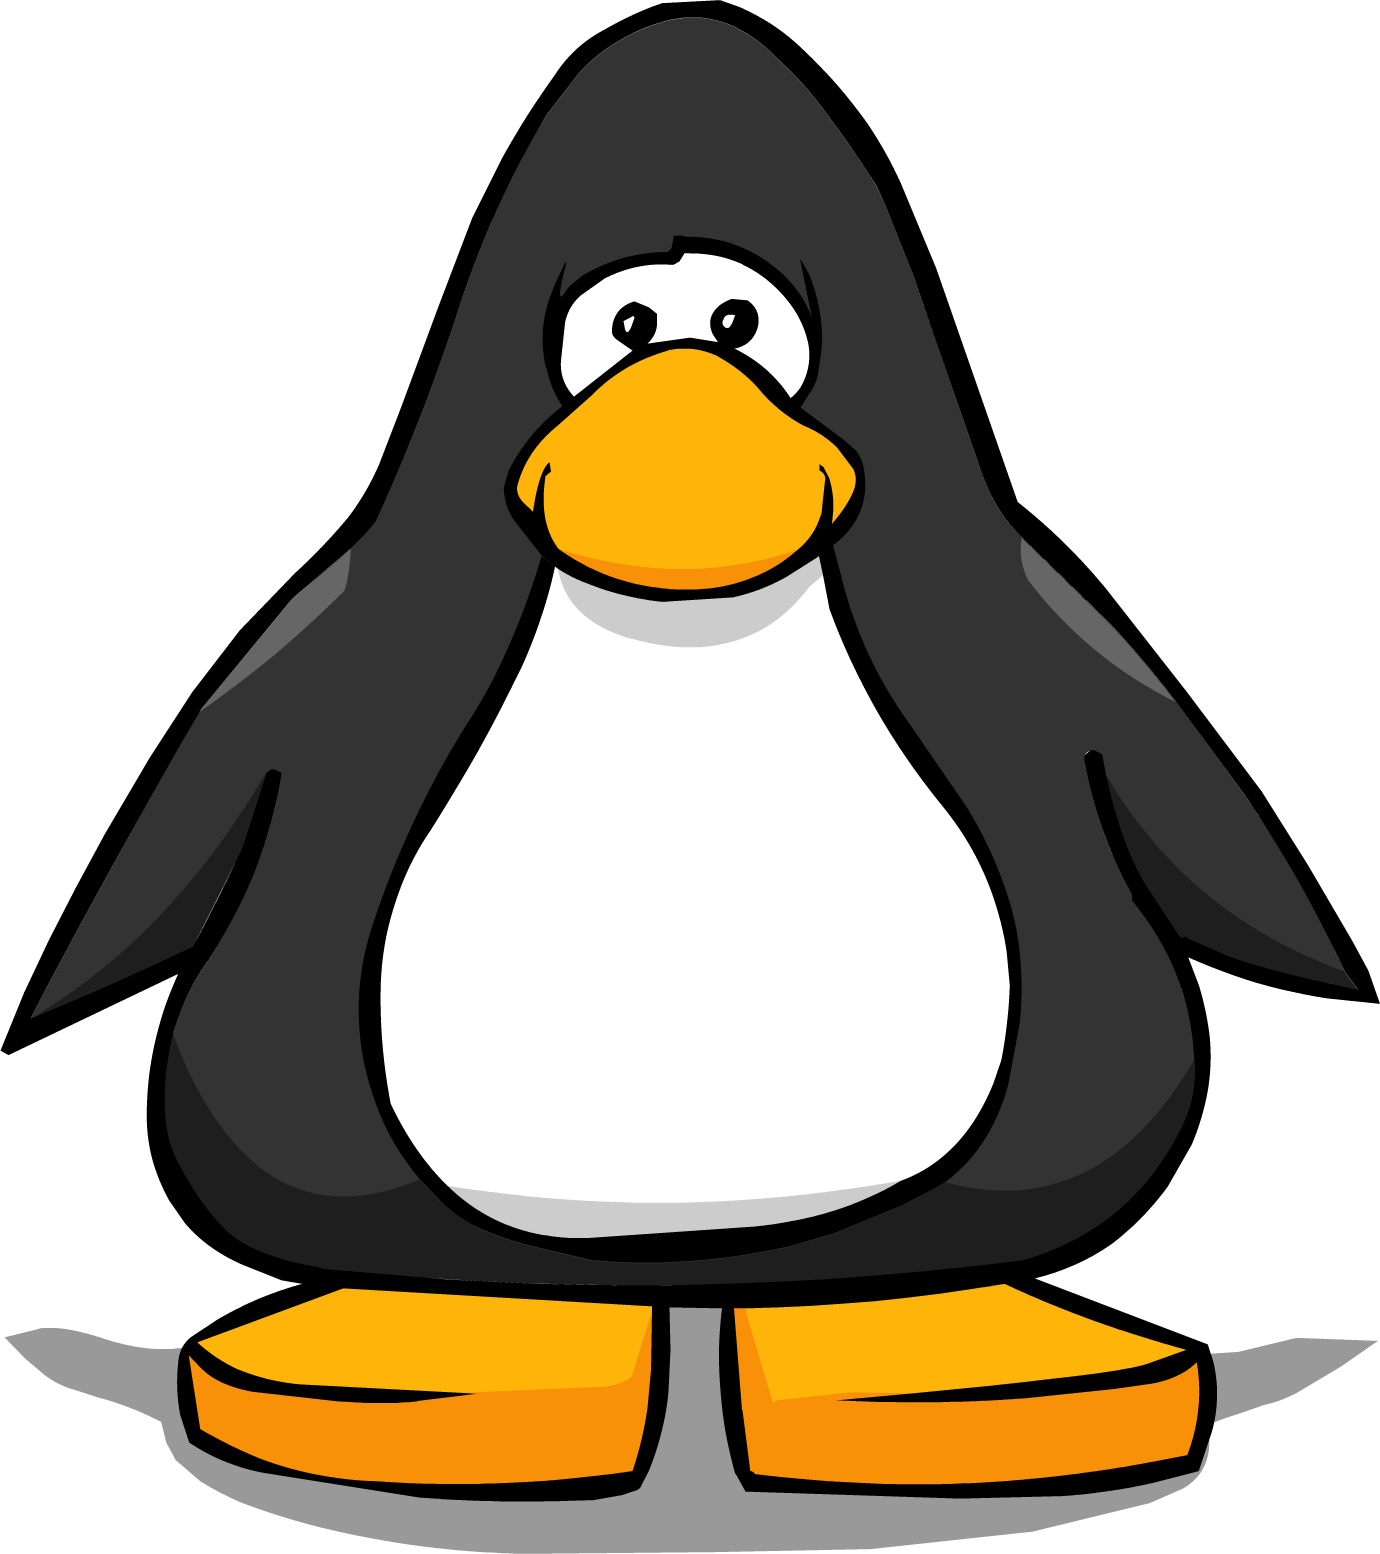 H Club Penguin Penguin | Club ...